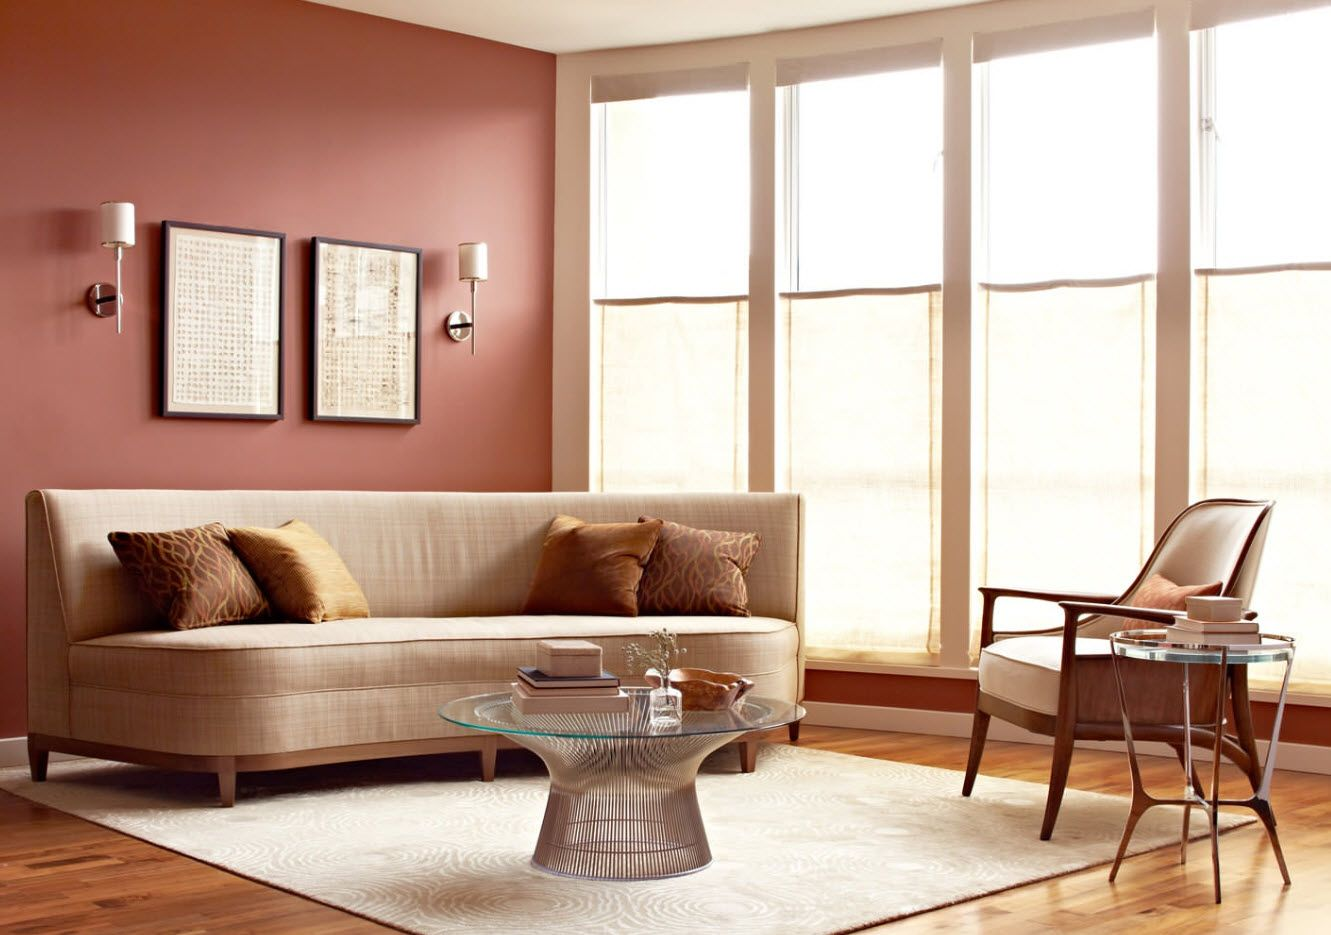 Nice light burgundy painted wall for the modern living